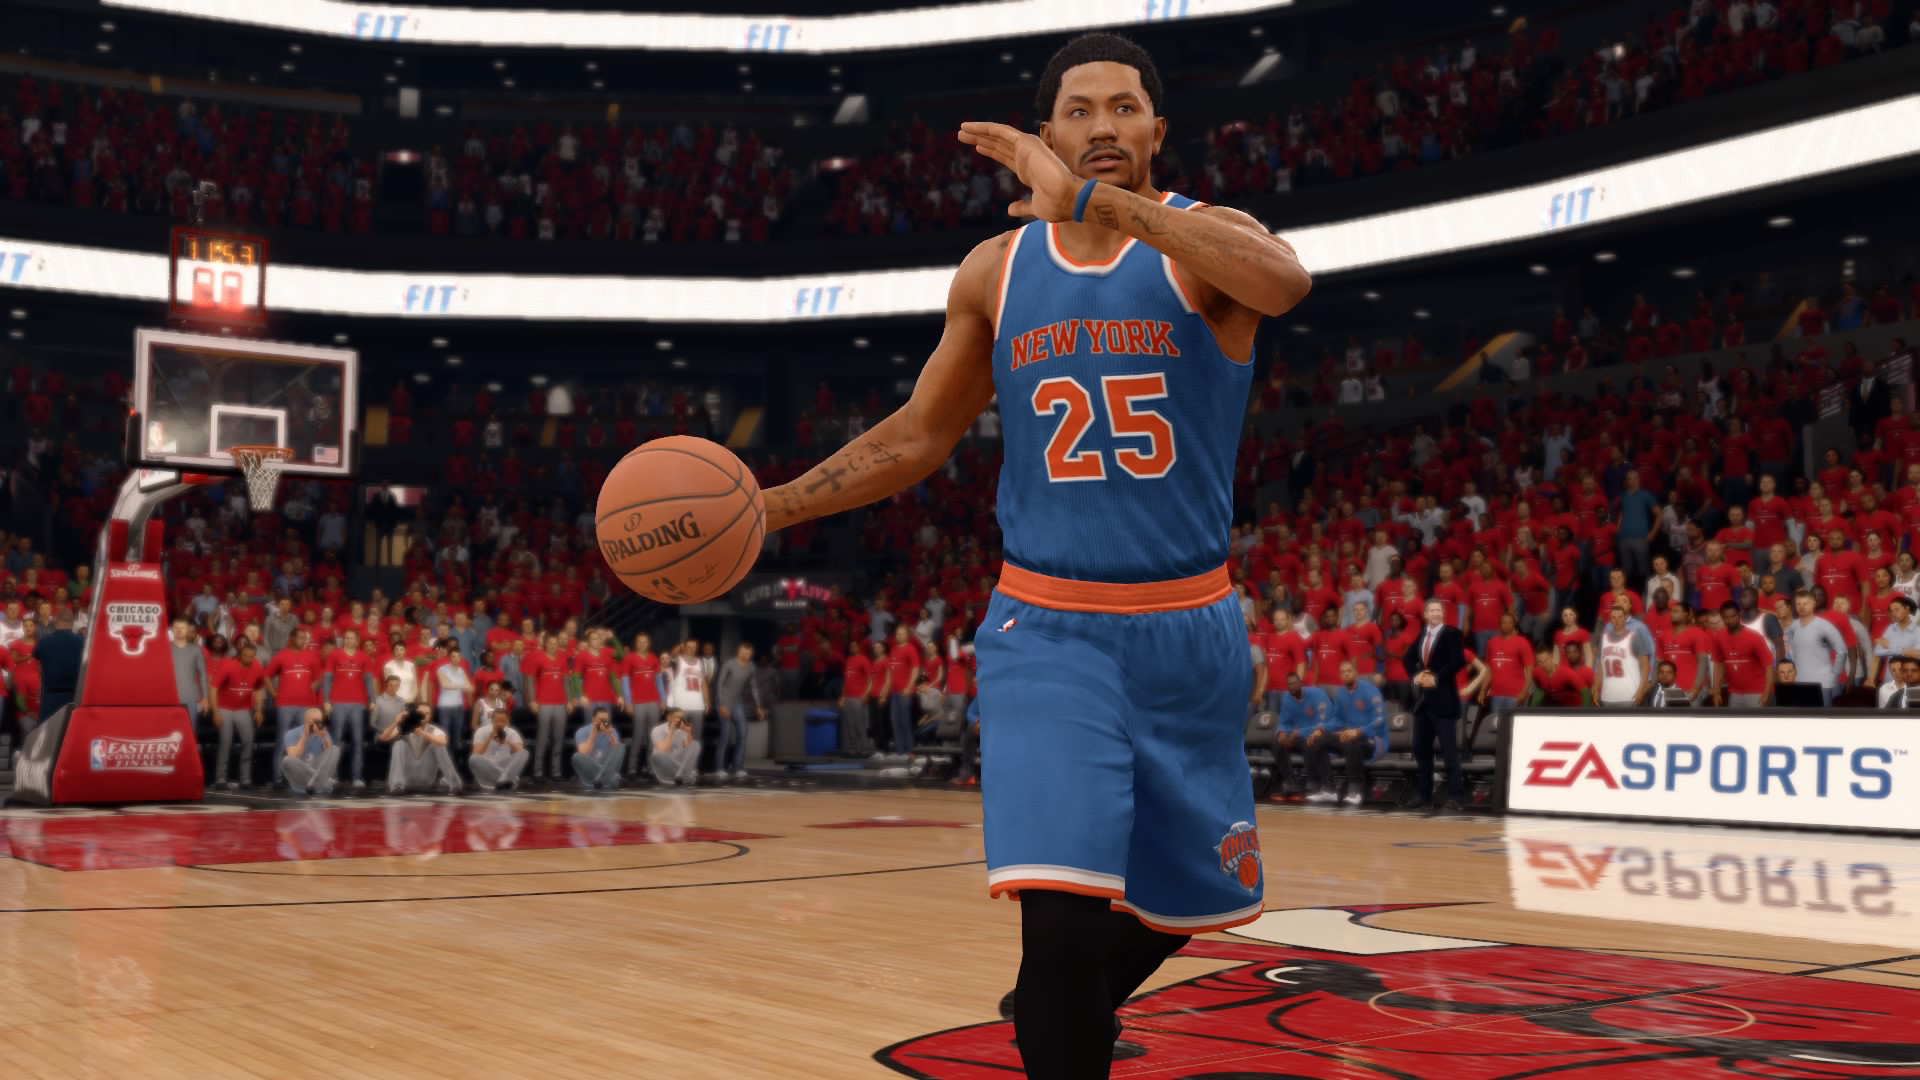 1920x1080 Derrick Rose on the New York Knicks in NBA Live 16